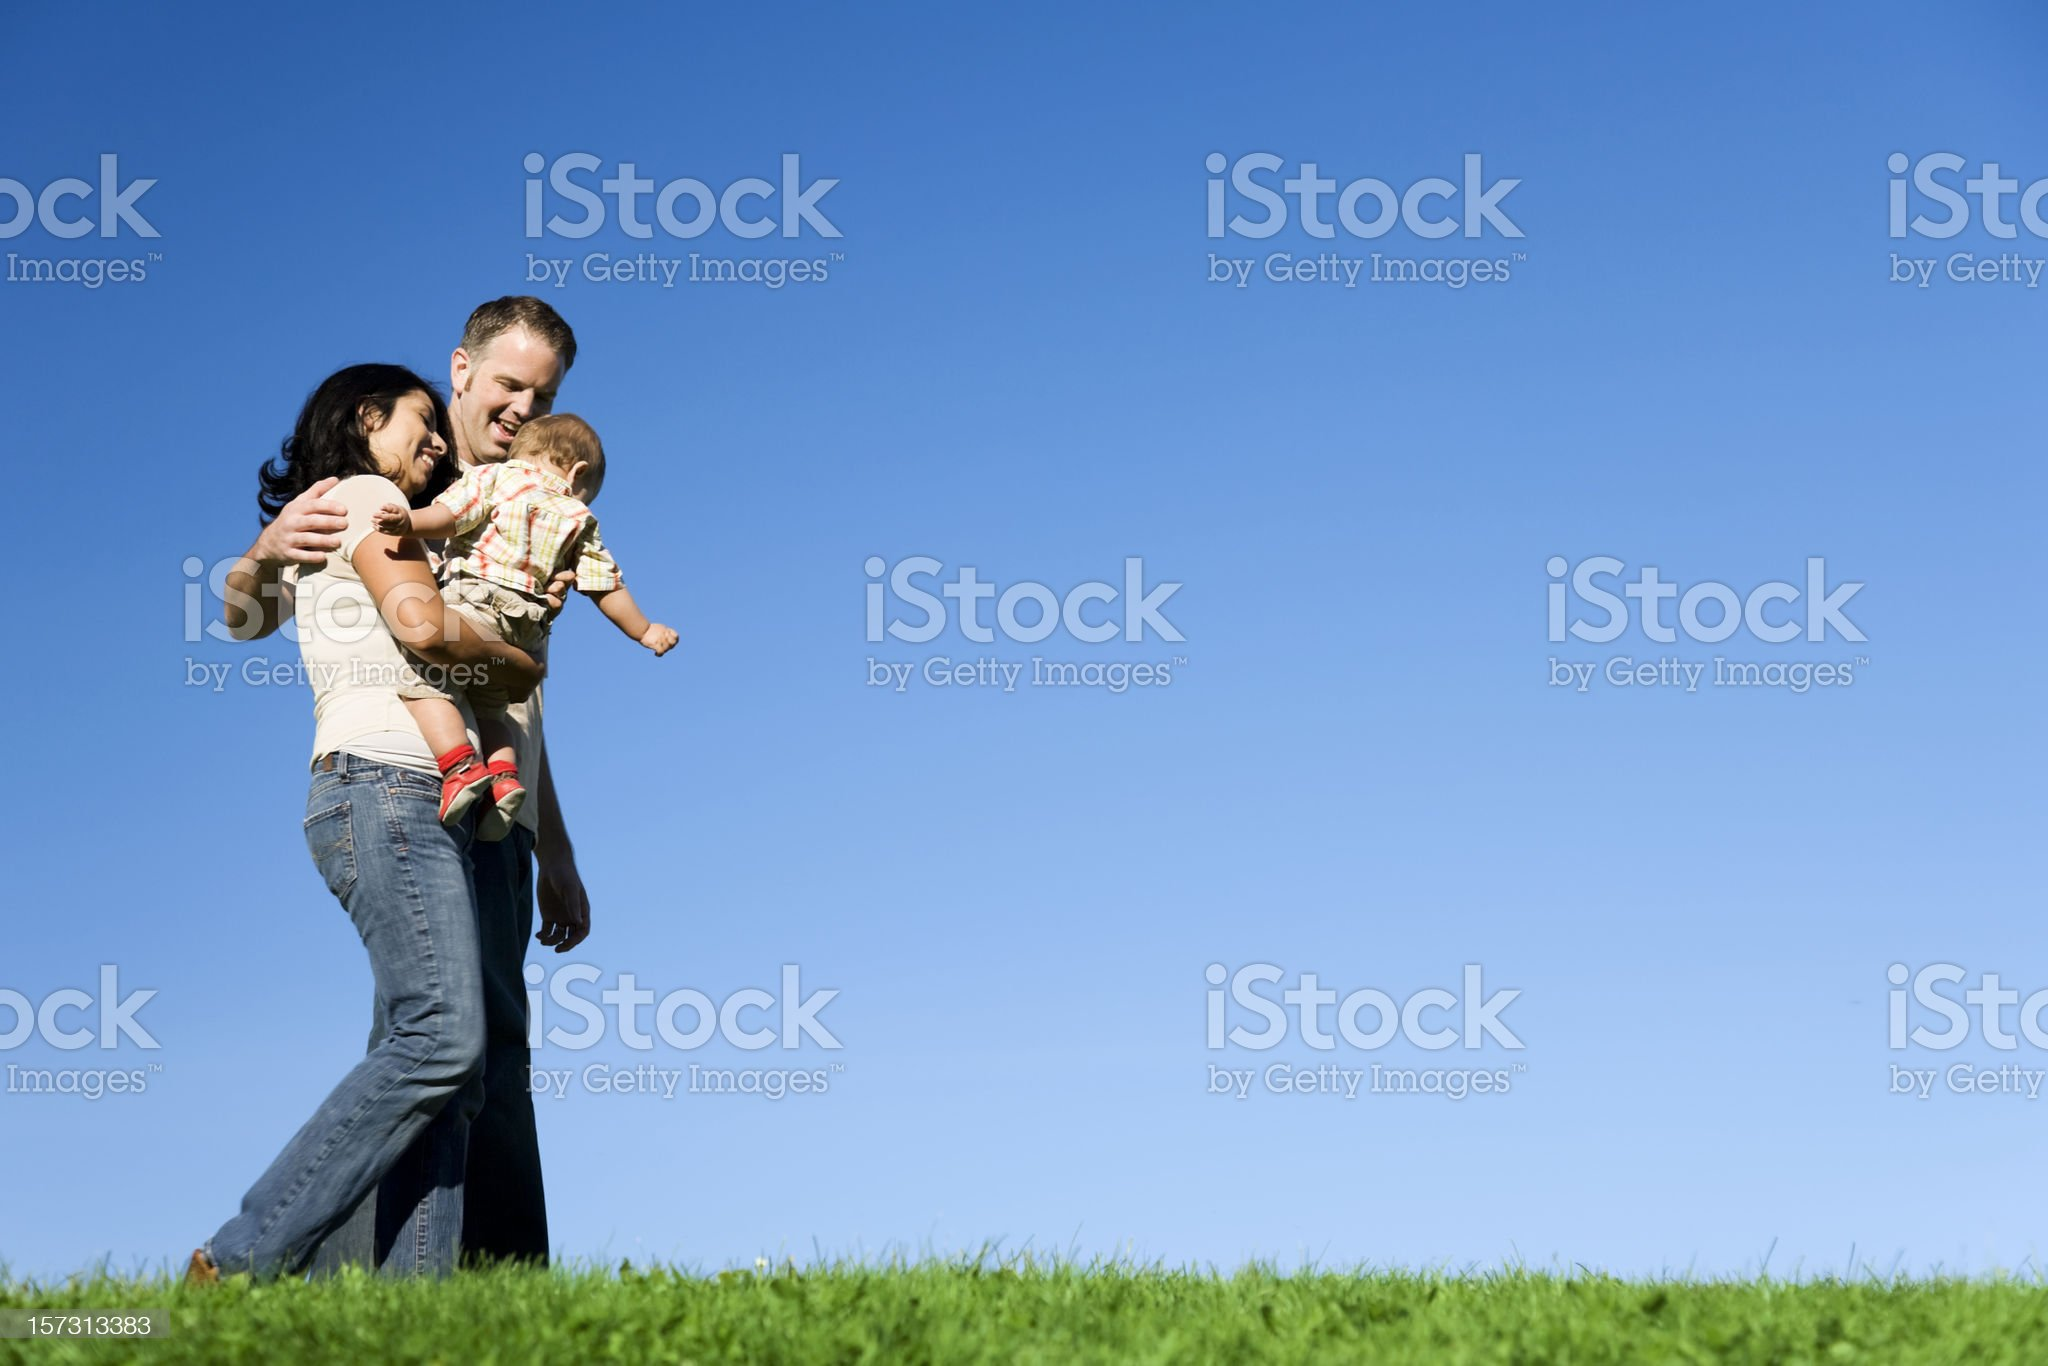 Family Strolling on a Summer Day royalty-free stock photo